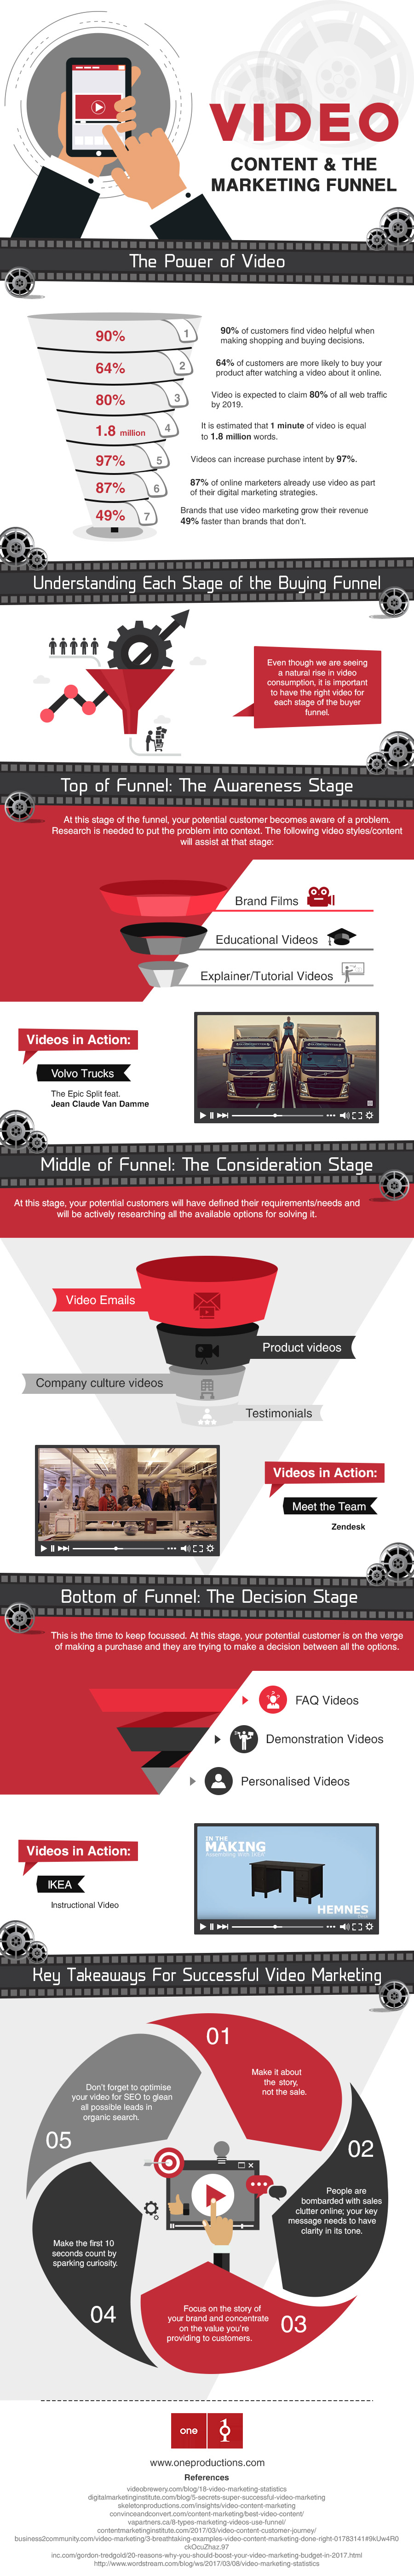 video content and the marketing funnel